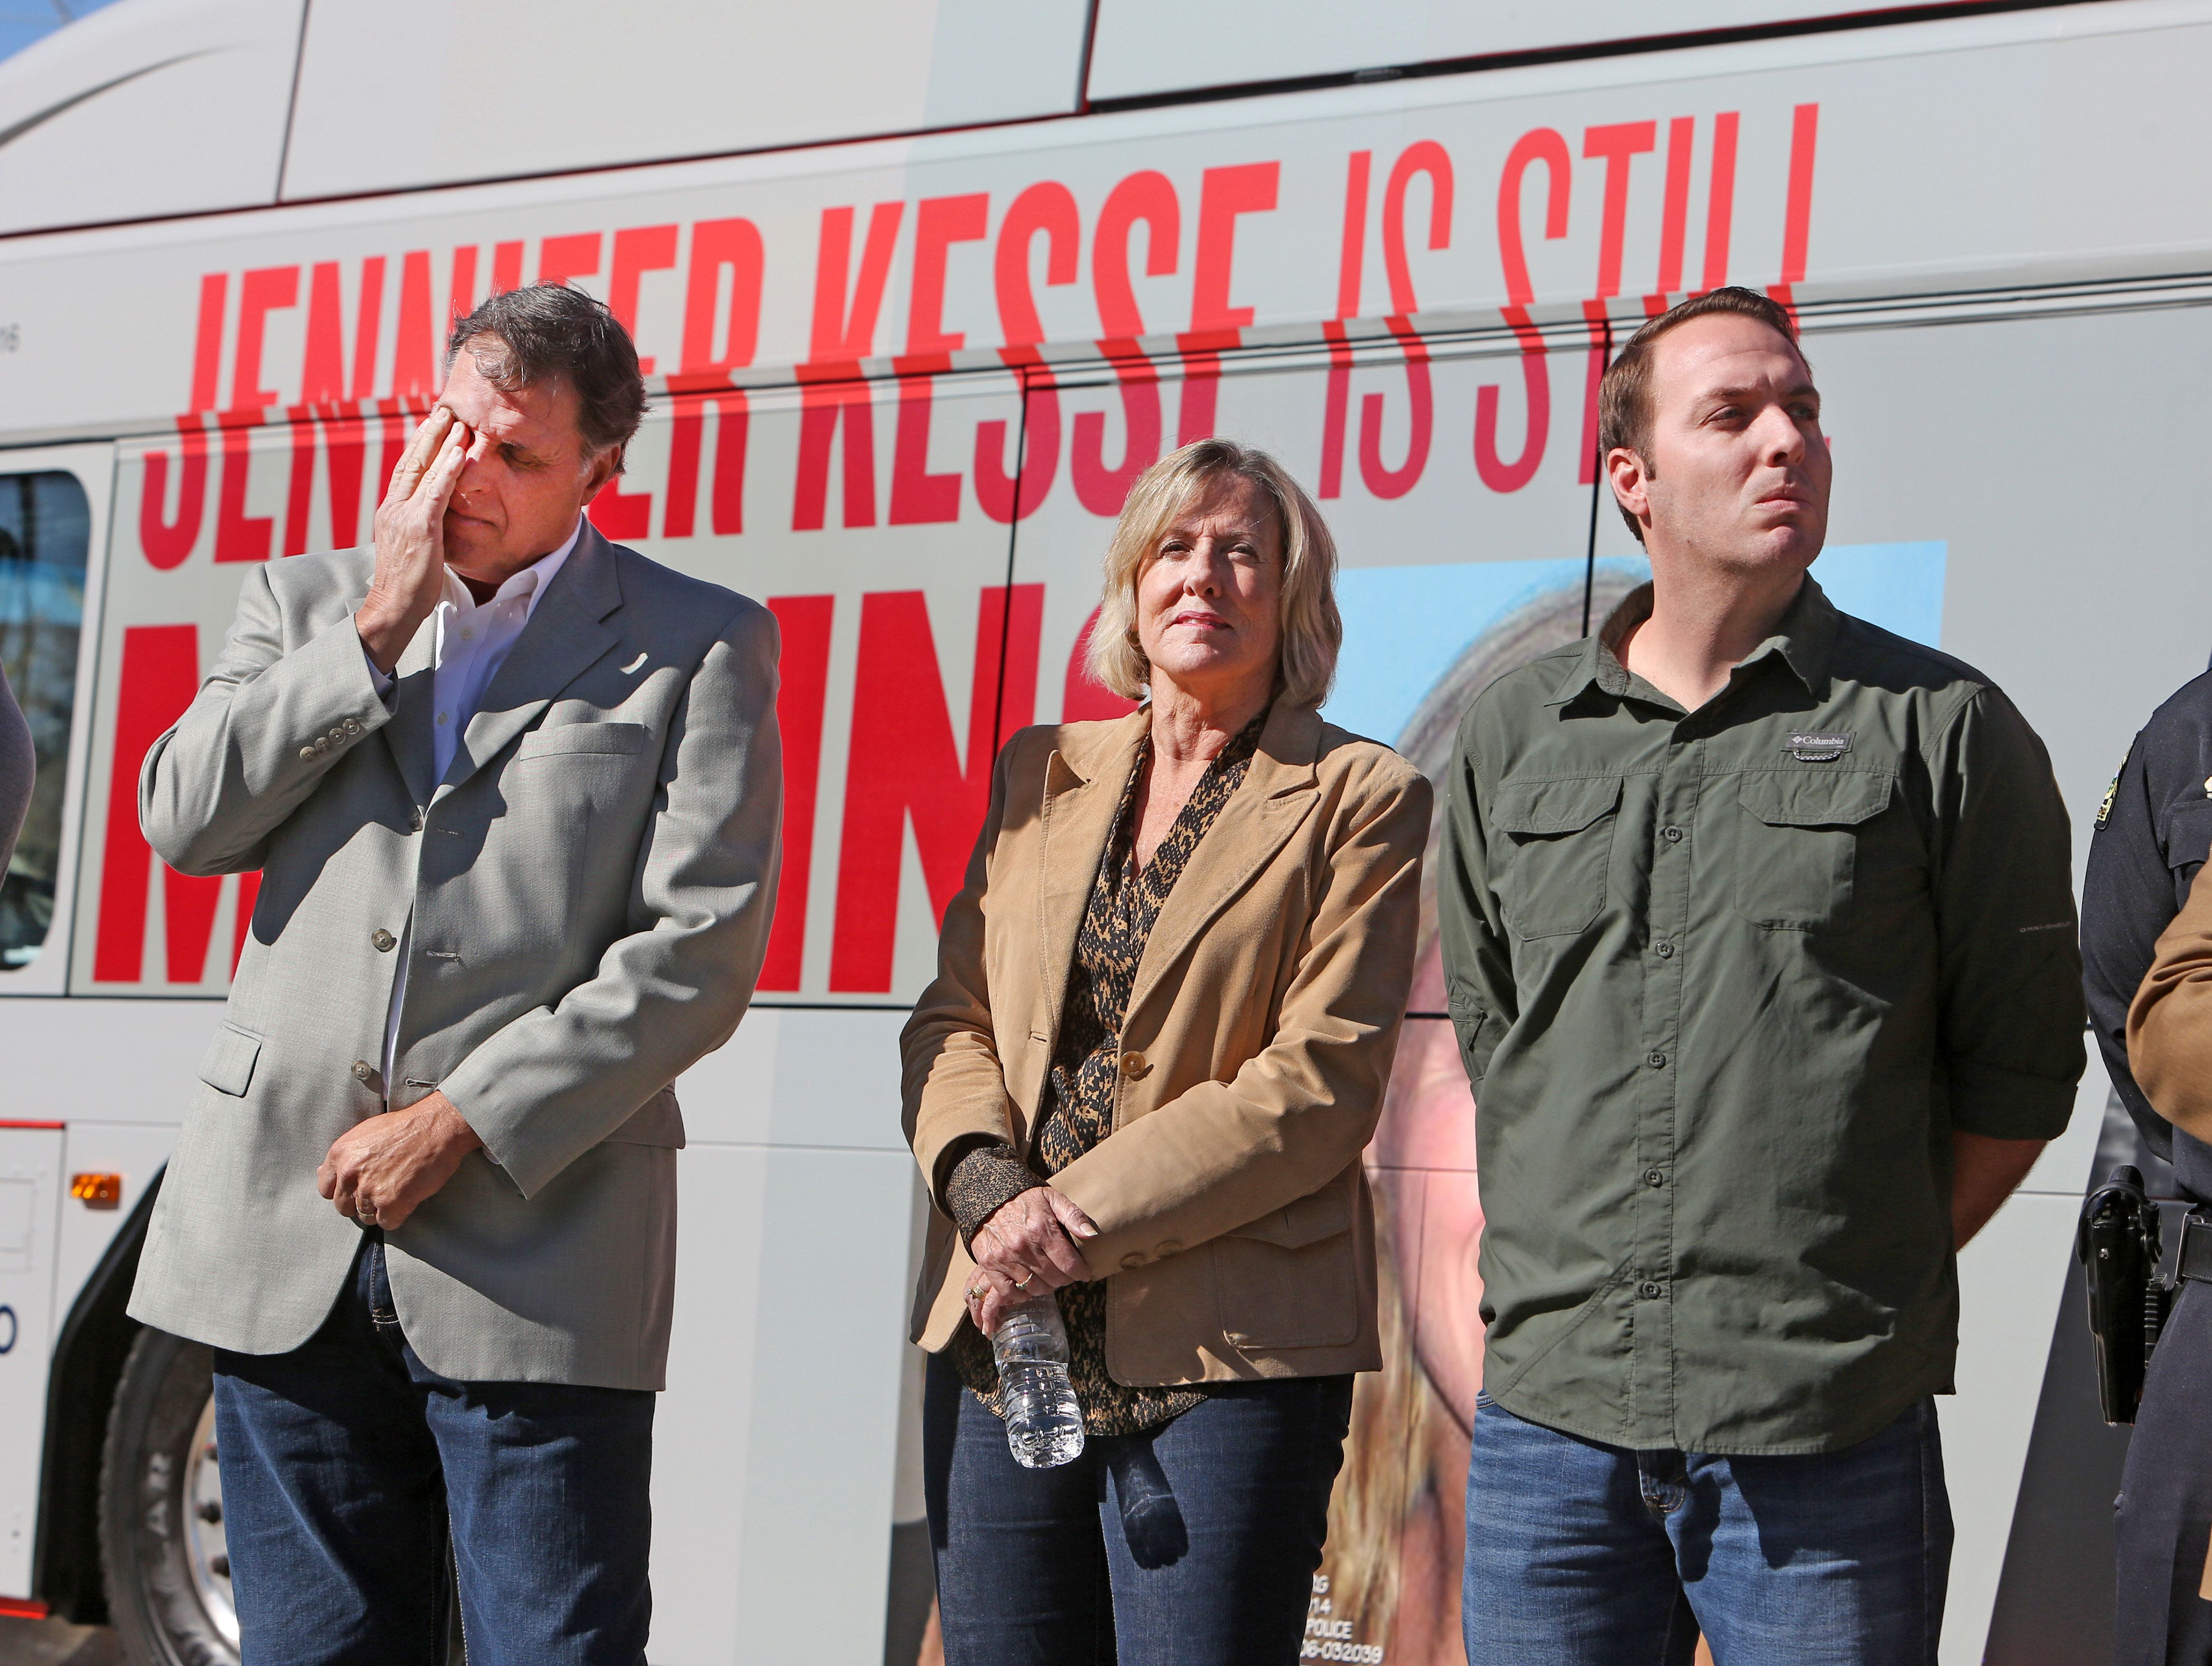 The Kesse family, Drew, father, Joyce, mother, and Logan, brother, participate in a news conference on January 24, 2018, marking 12 years since the disappearance of Jennifer Kesse. (Red Huber/Orlando Sentinel/TNS via Getty Images)